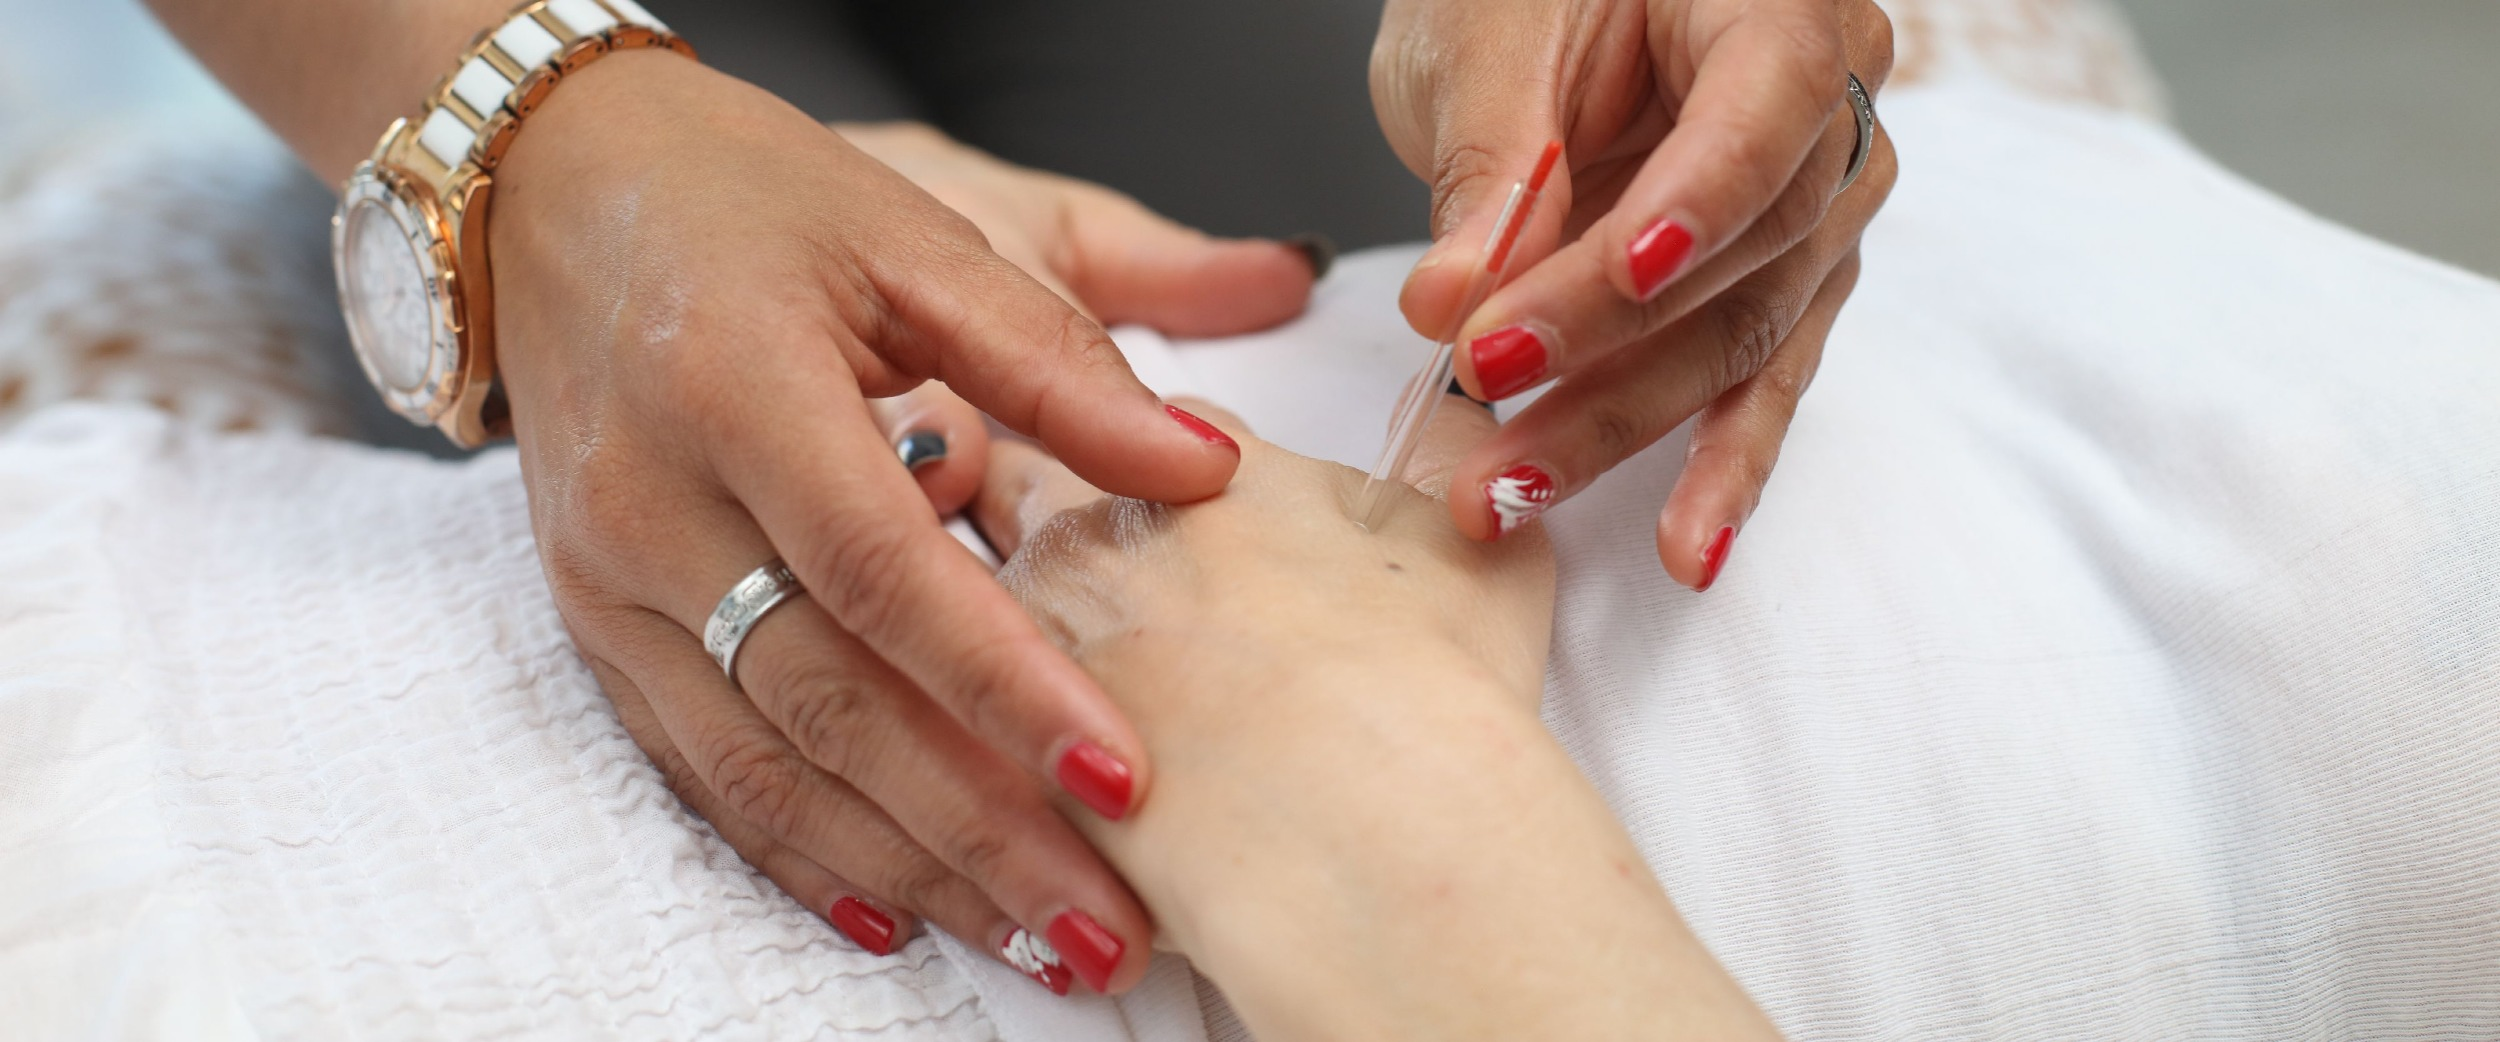 Using acupuncture for treating cancer treatment side effects